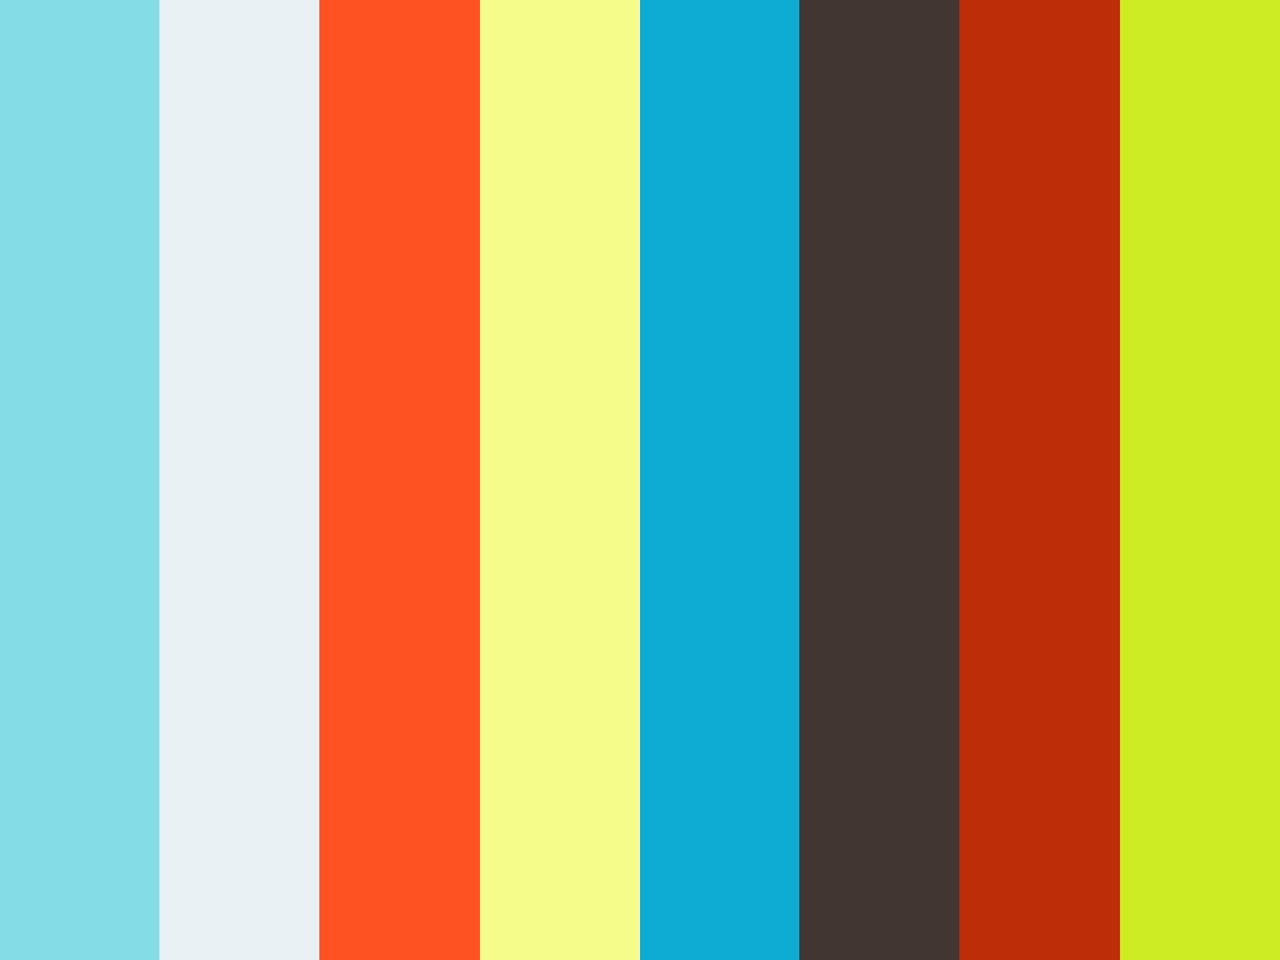 Nude Beach News 5 On Vimeo-8280